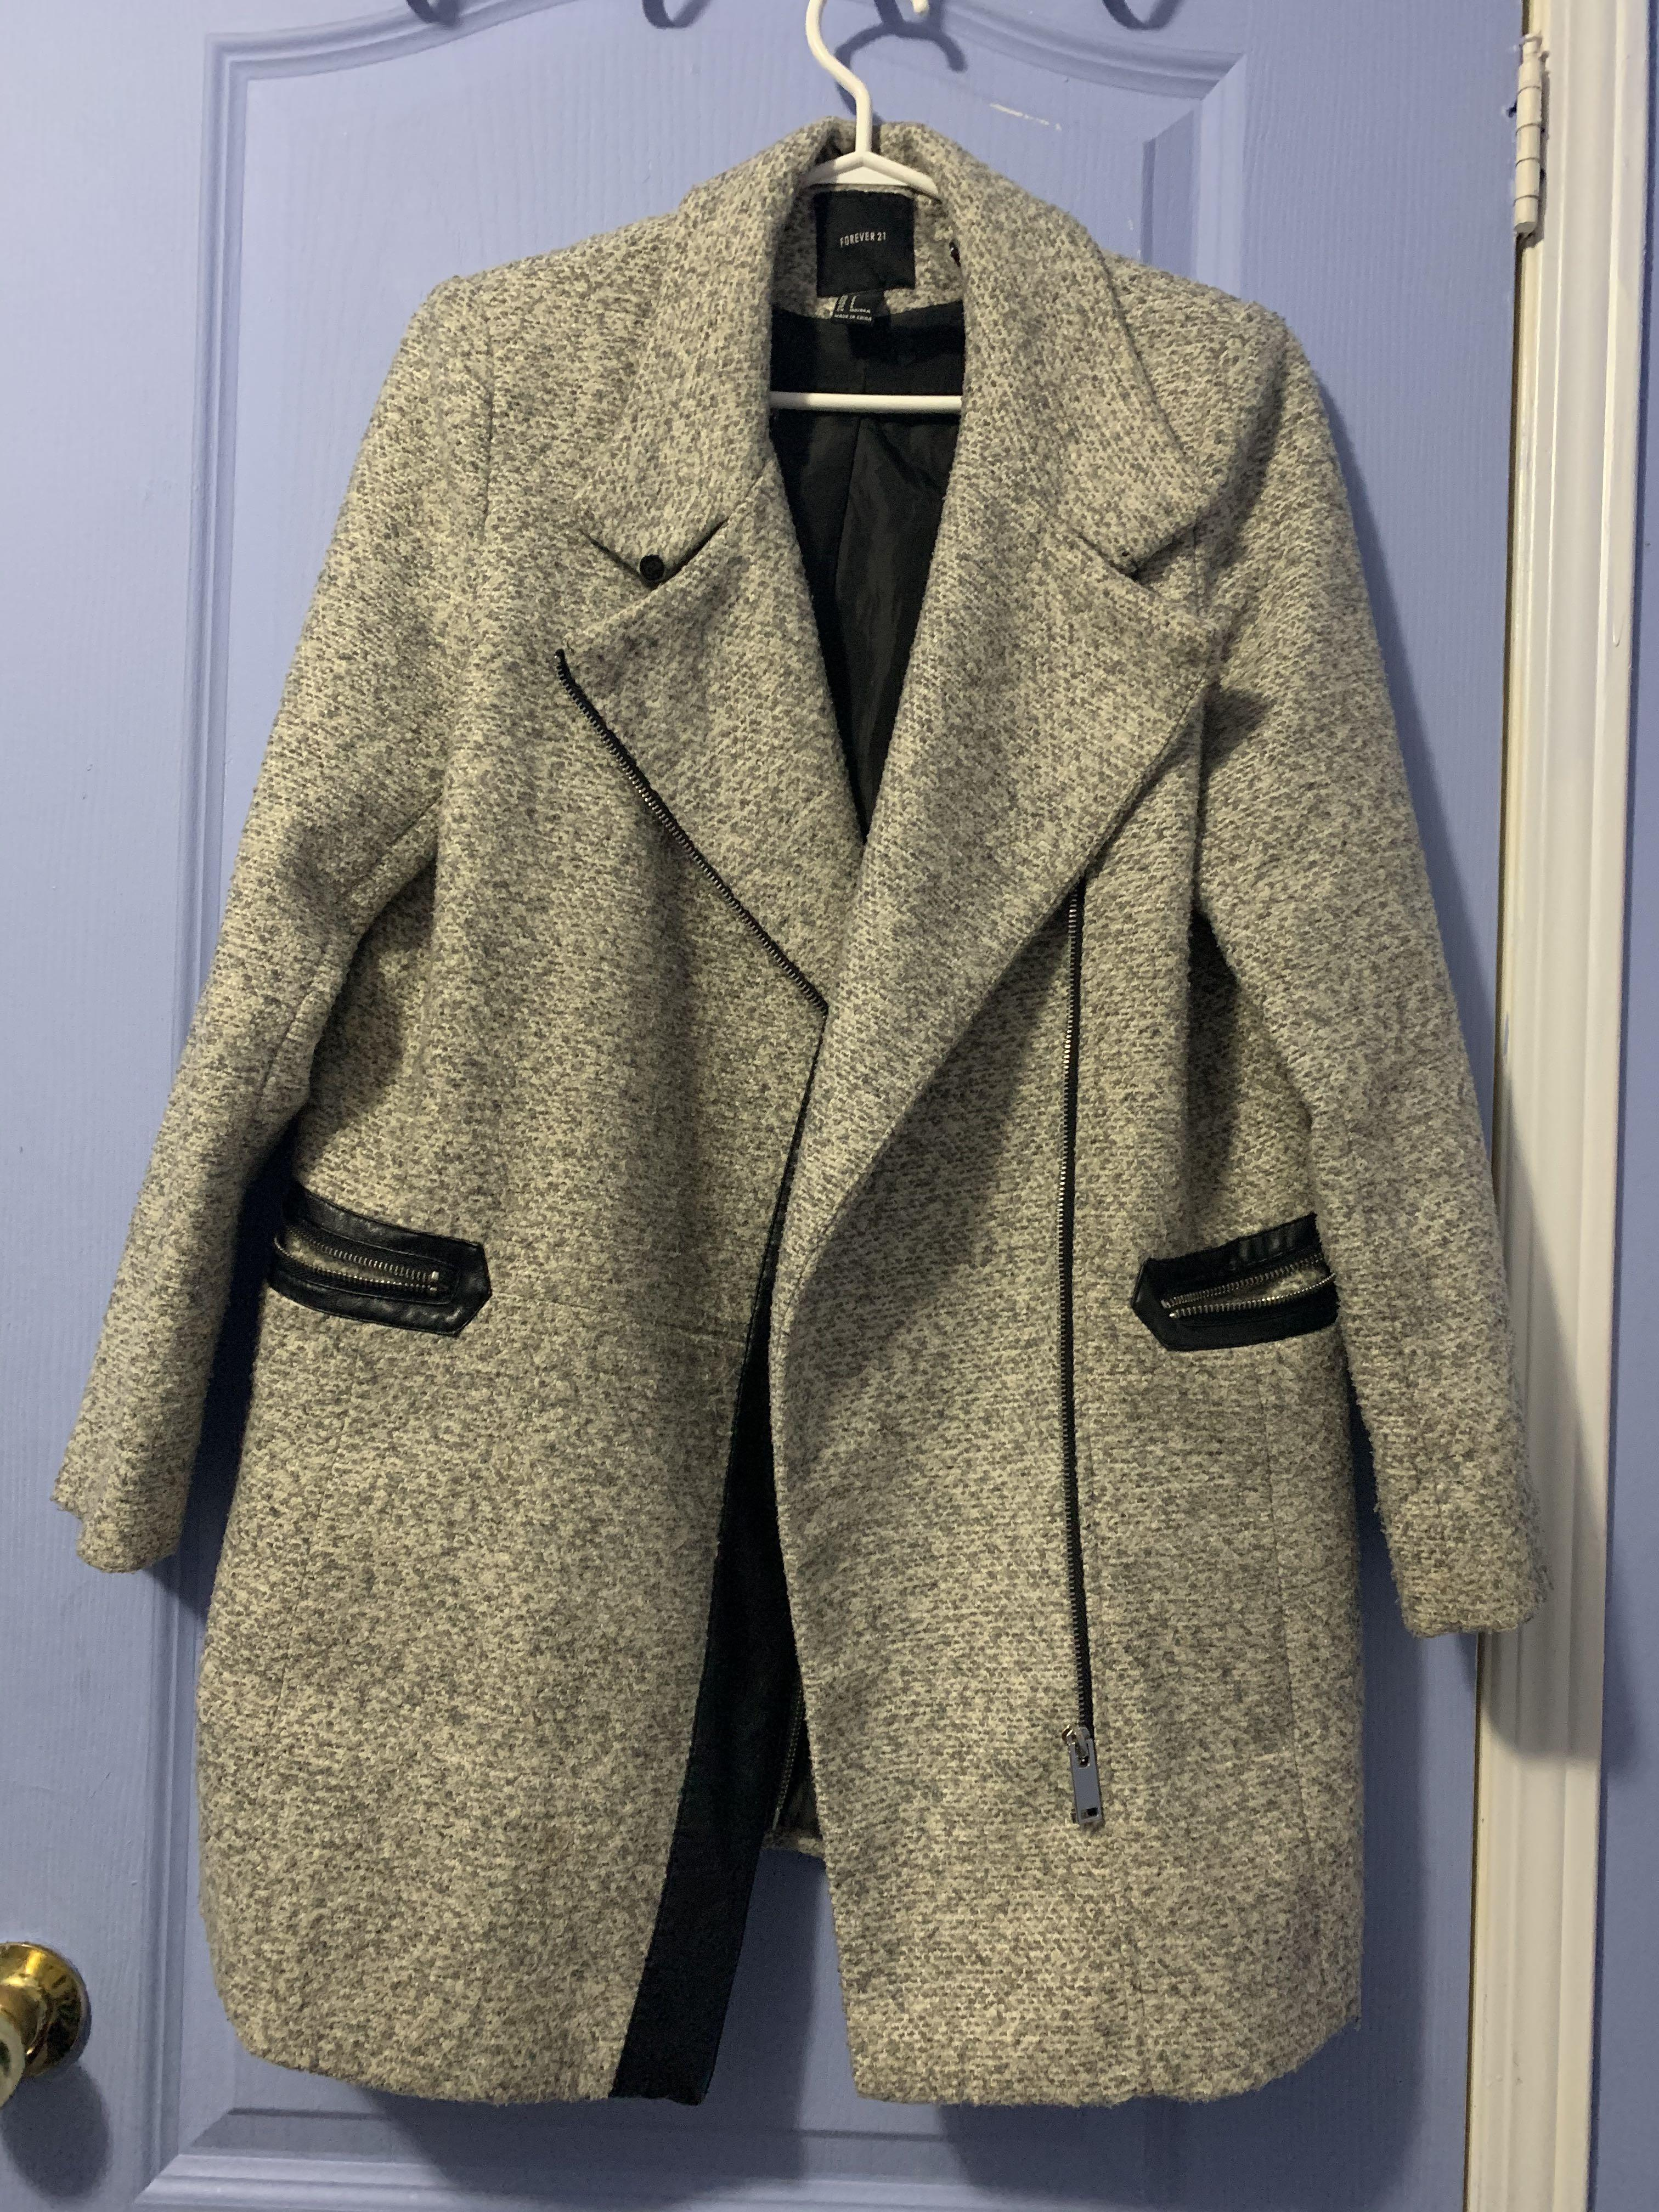 SMALL WOOL JACKET W LEATHER